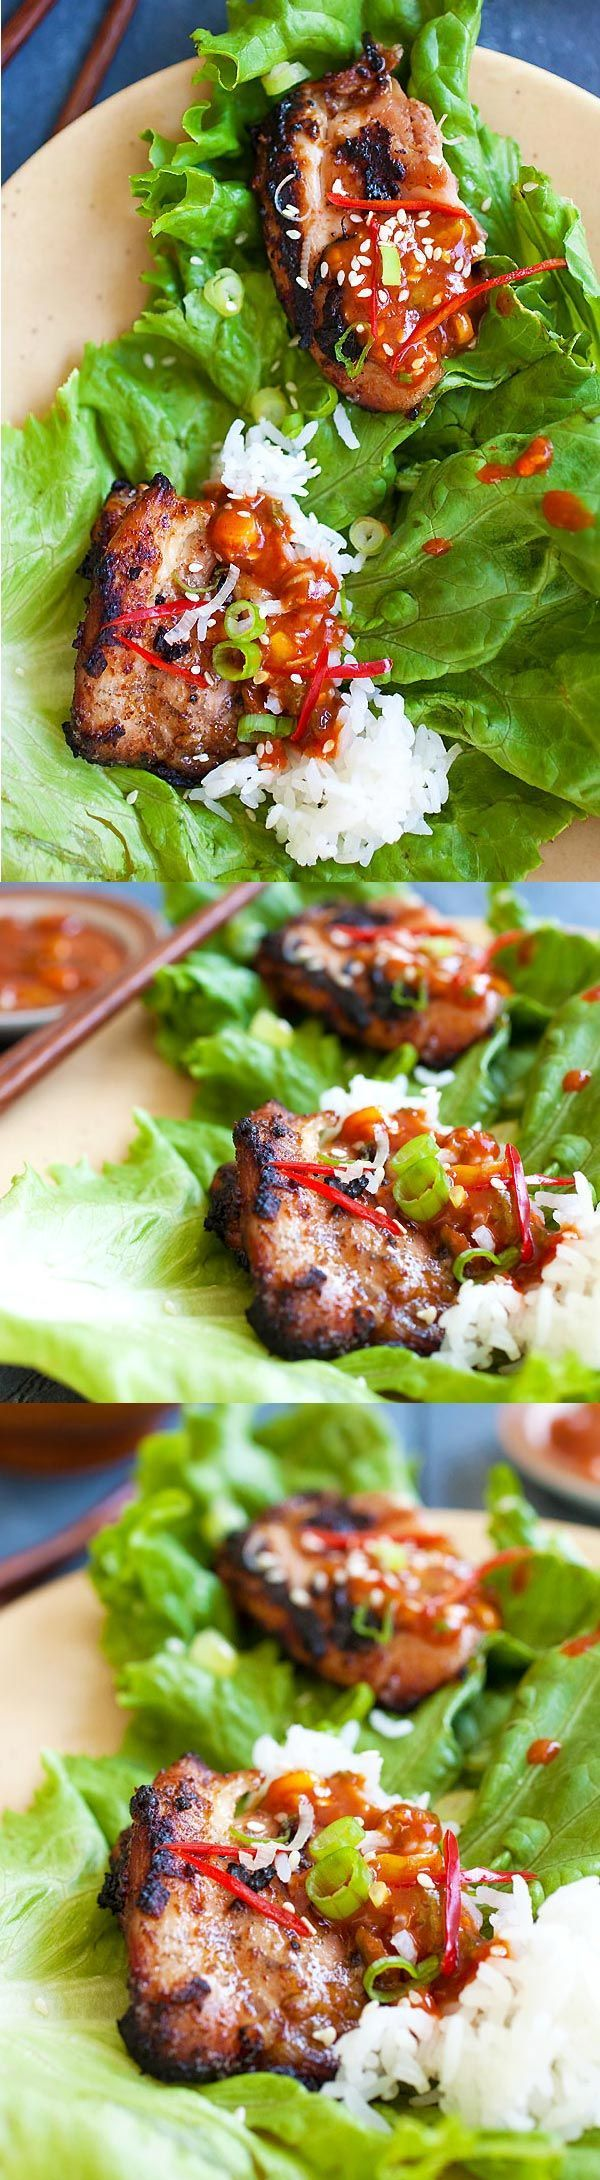 Best 25 healthy korean recipes ideas on pinterest whats my korean bbq chicken dak gogi juicy and delicious bbq chicken served with an forumfinder Images